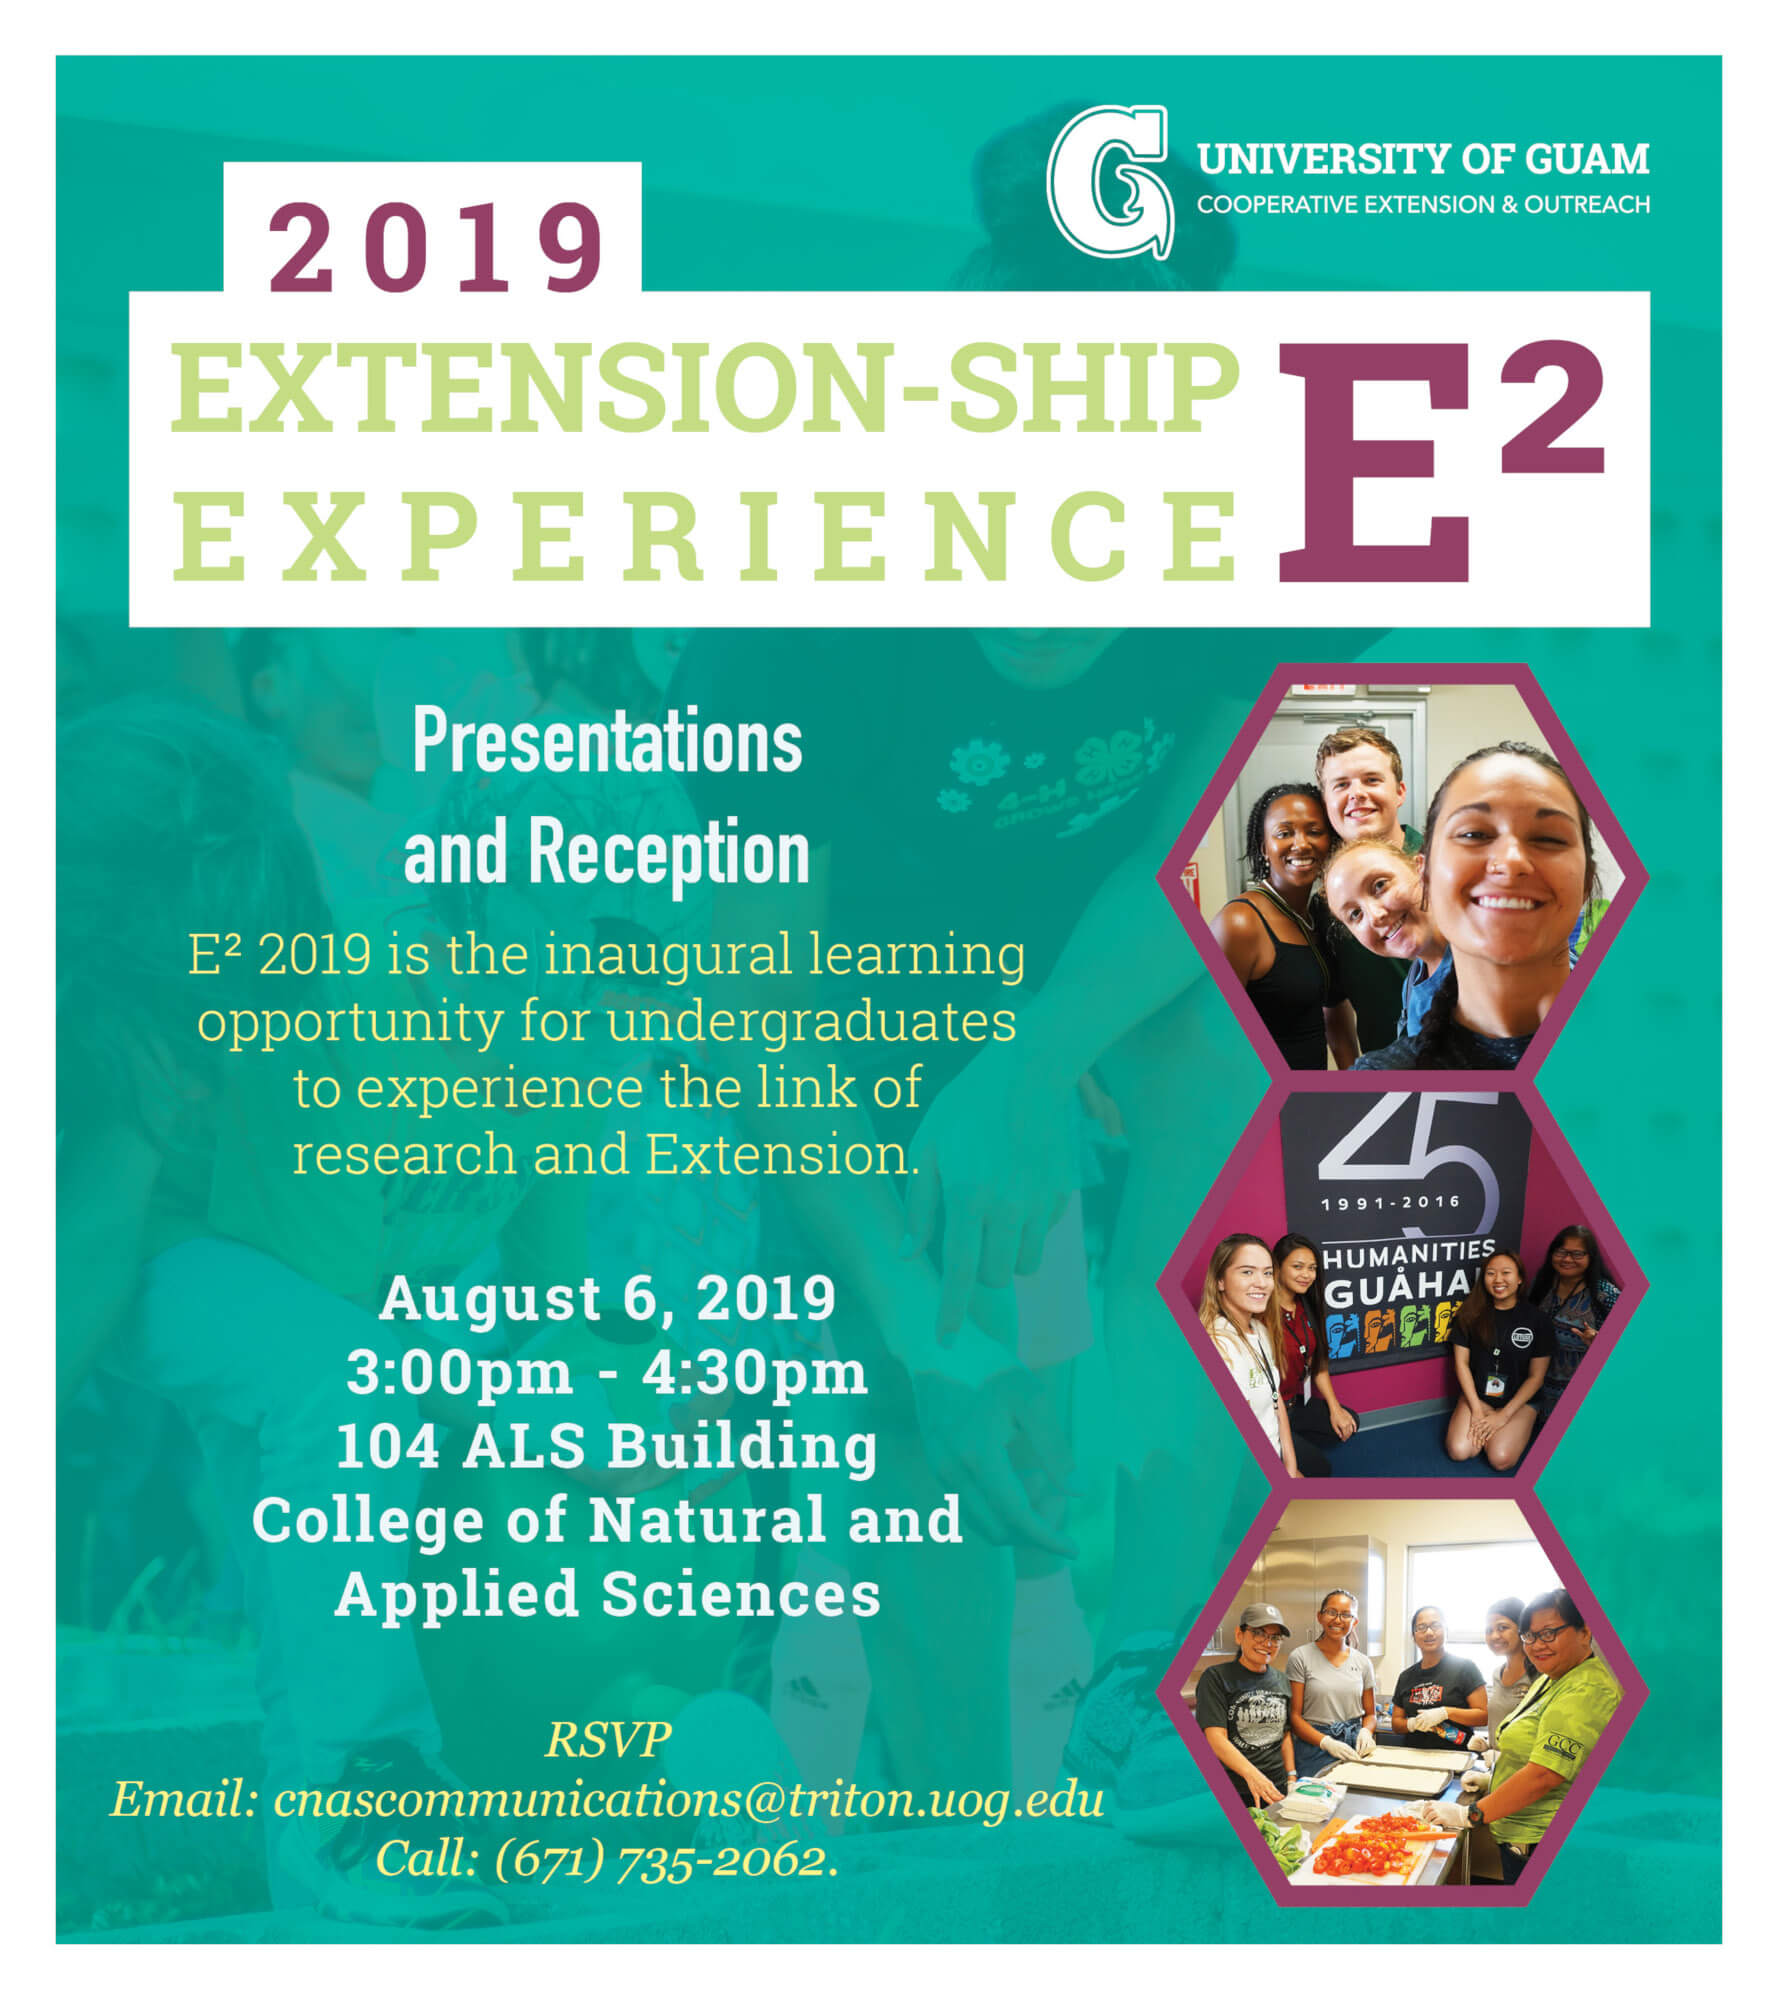 Save the Date: Extension-ship Experience Aug 6